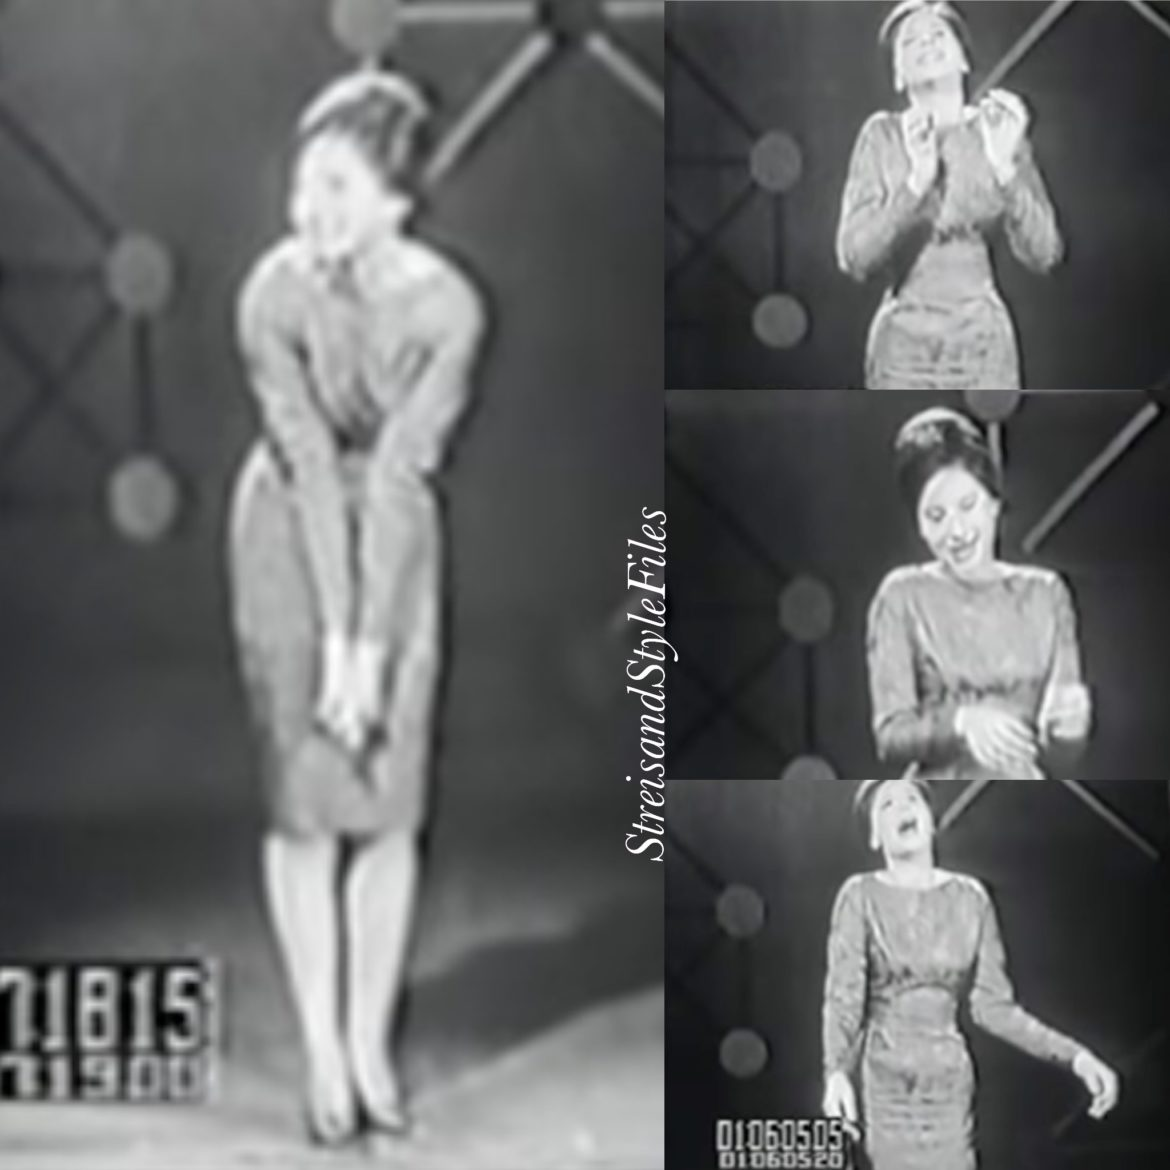 Self-designed dress made of burgundy upholstery fabric on Tonight Starring Jack Paar in 1961